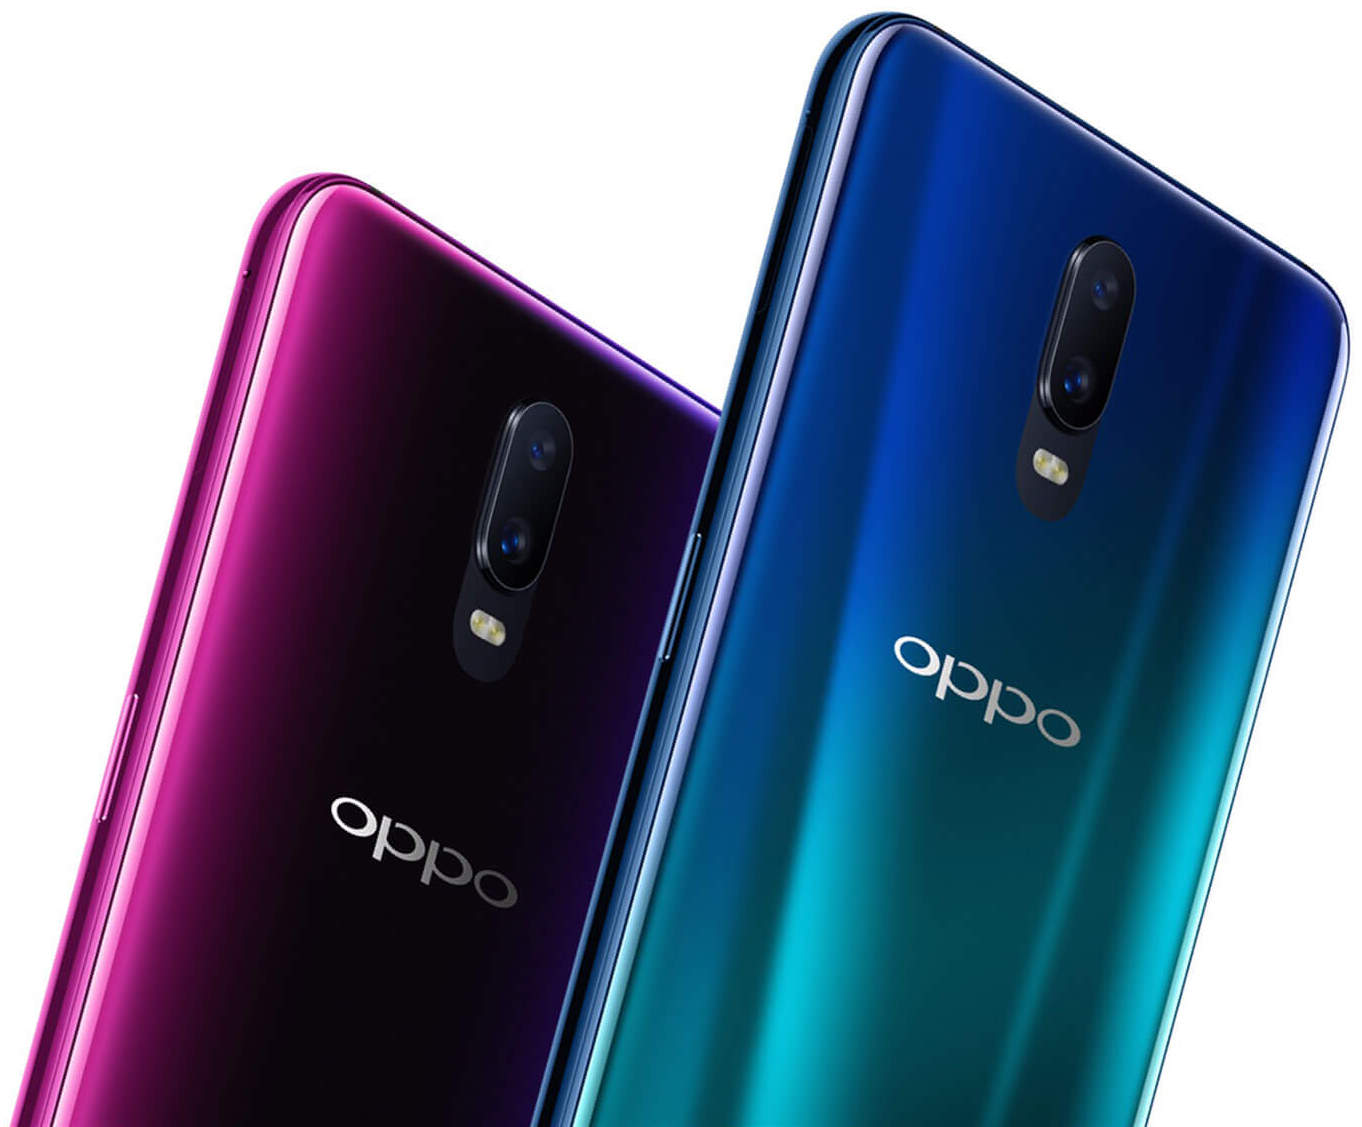 OPPO-R17-colors